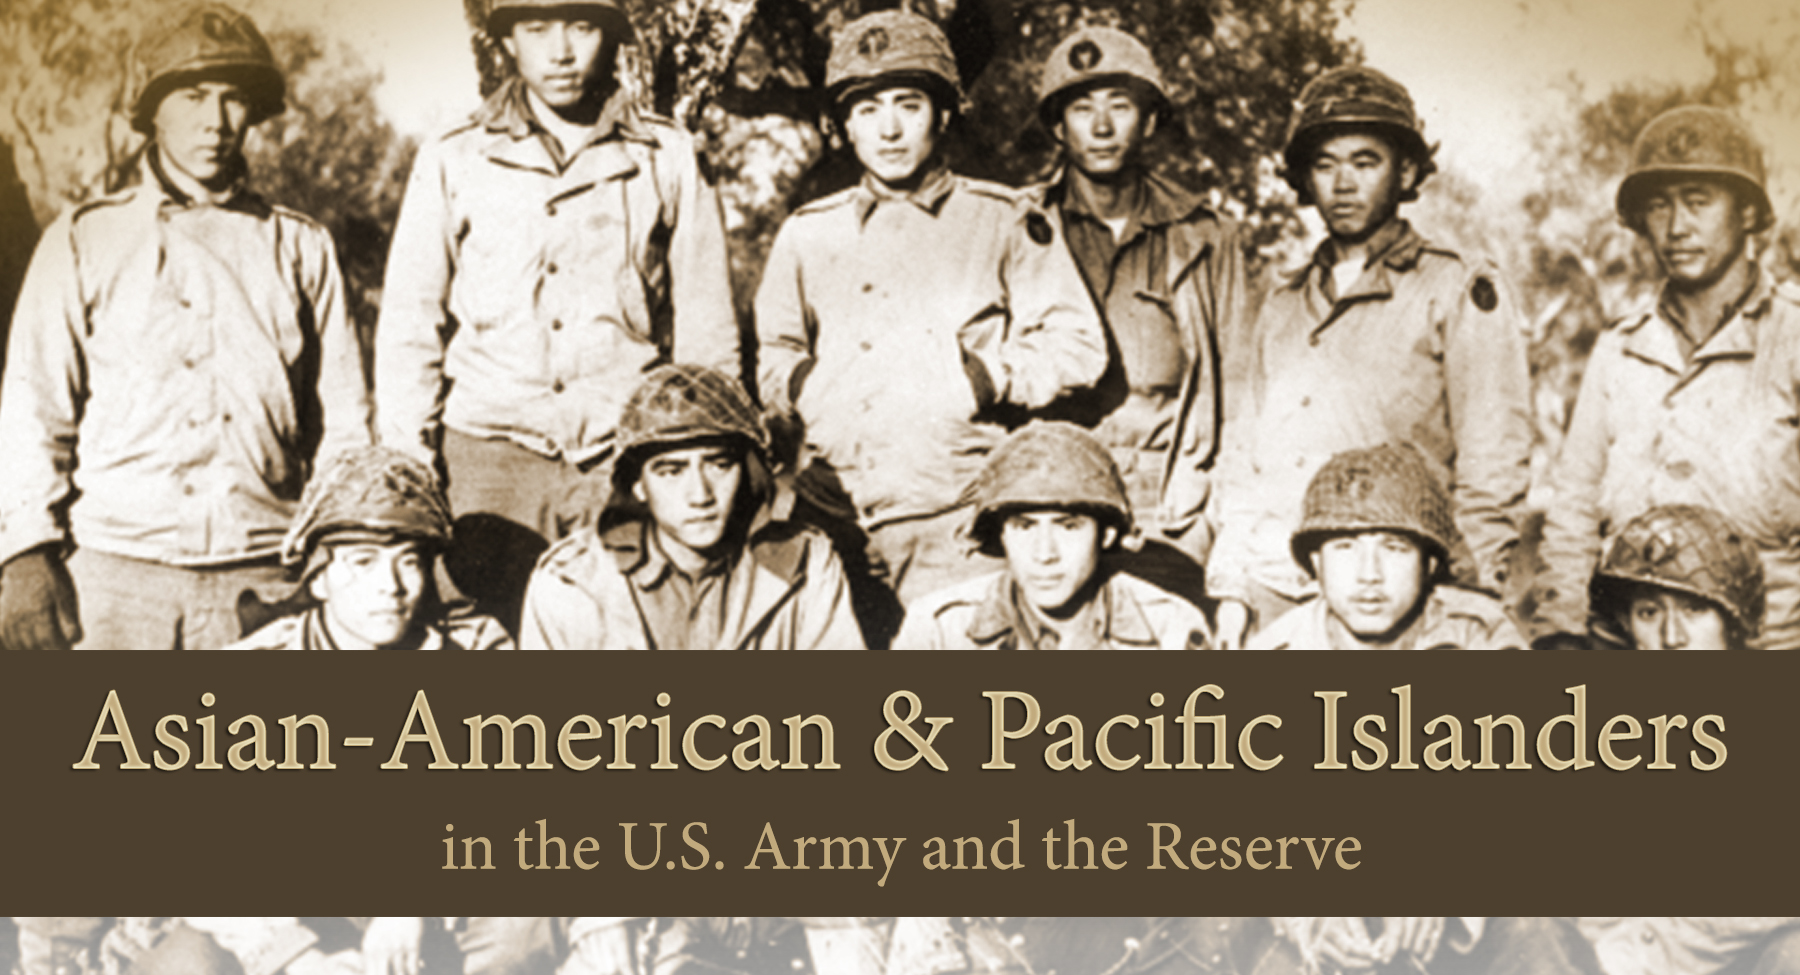 www.usar.army.mil: Asian-American & Pacific Islander Heritage